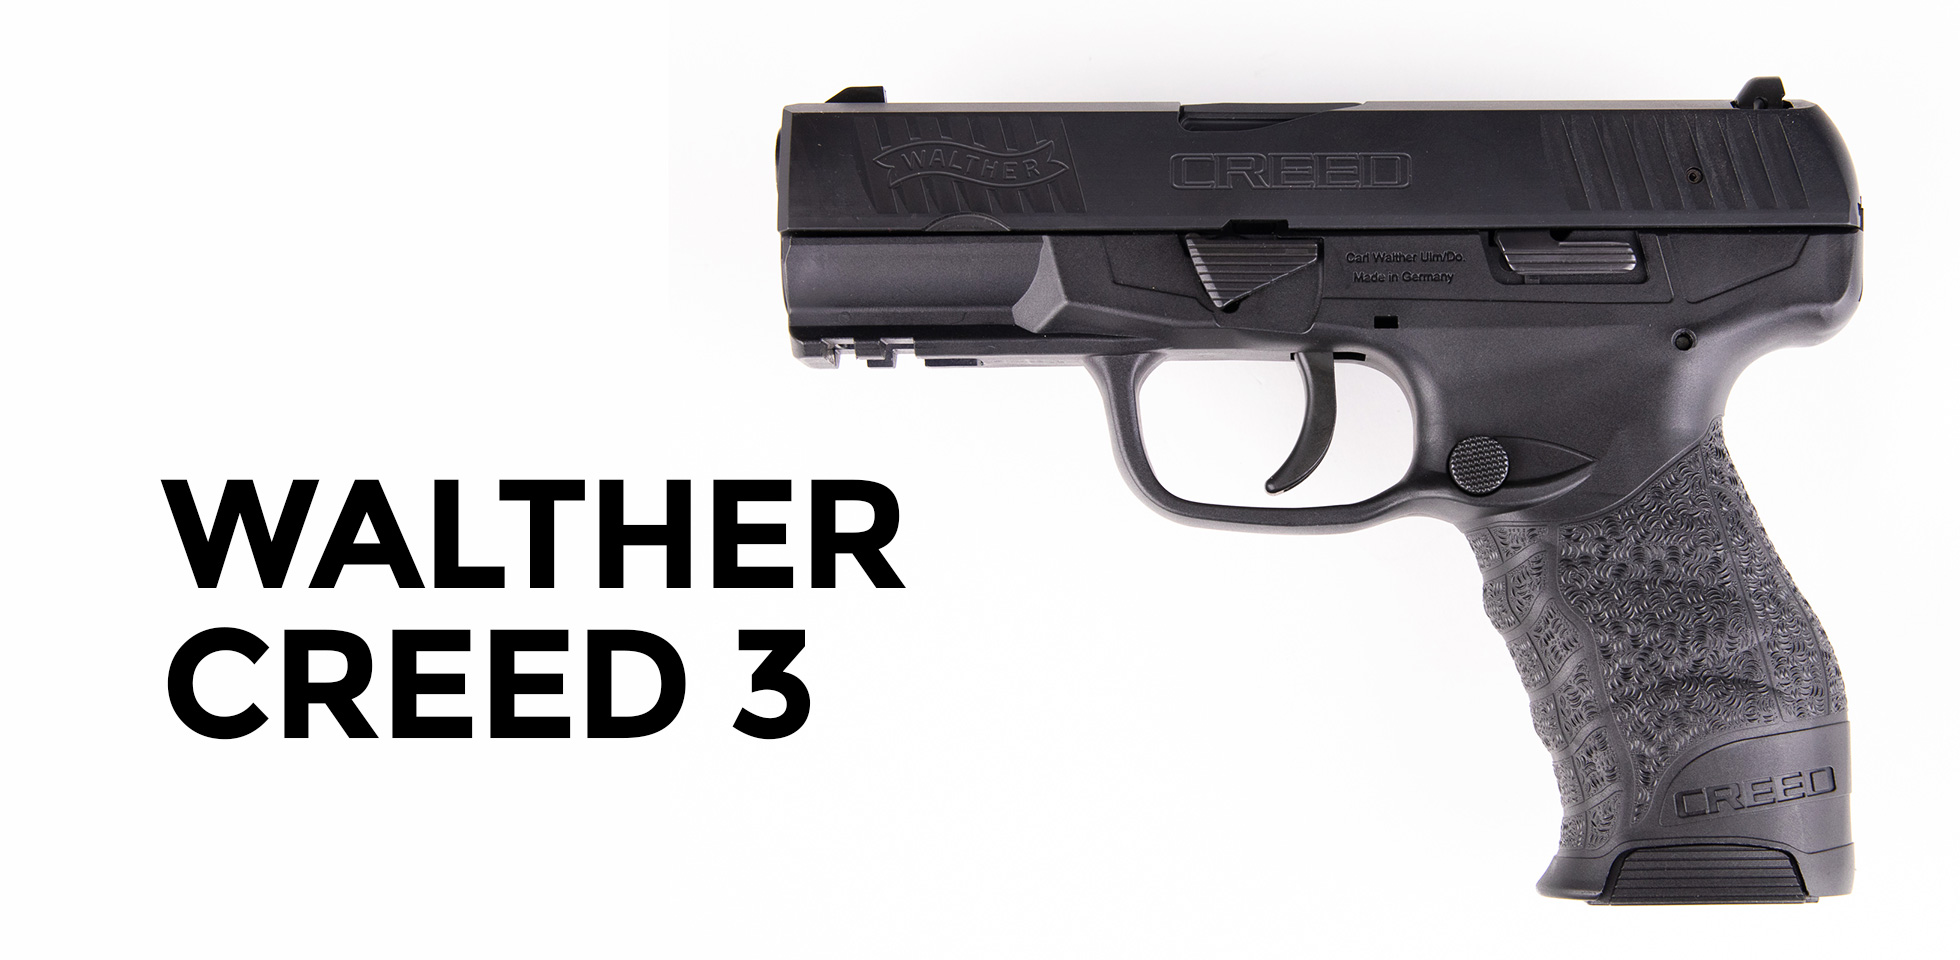 Walther Creed 3 9mm pistol